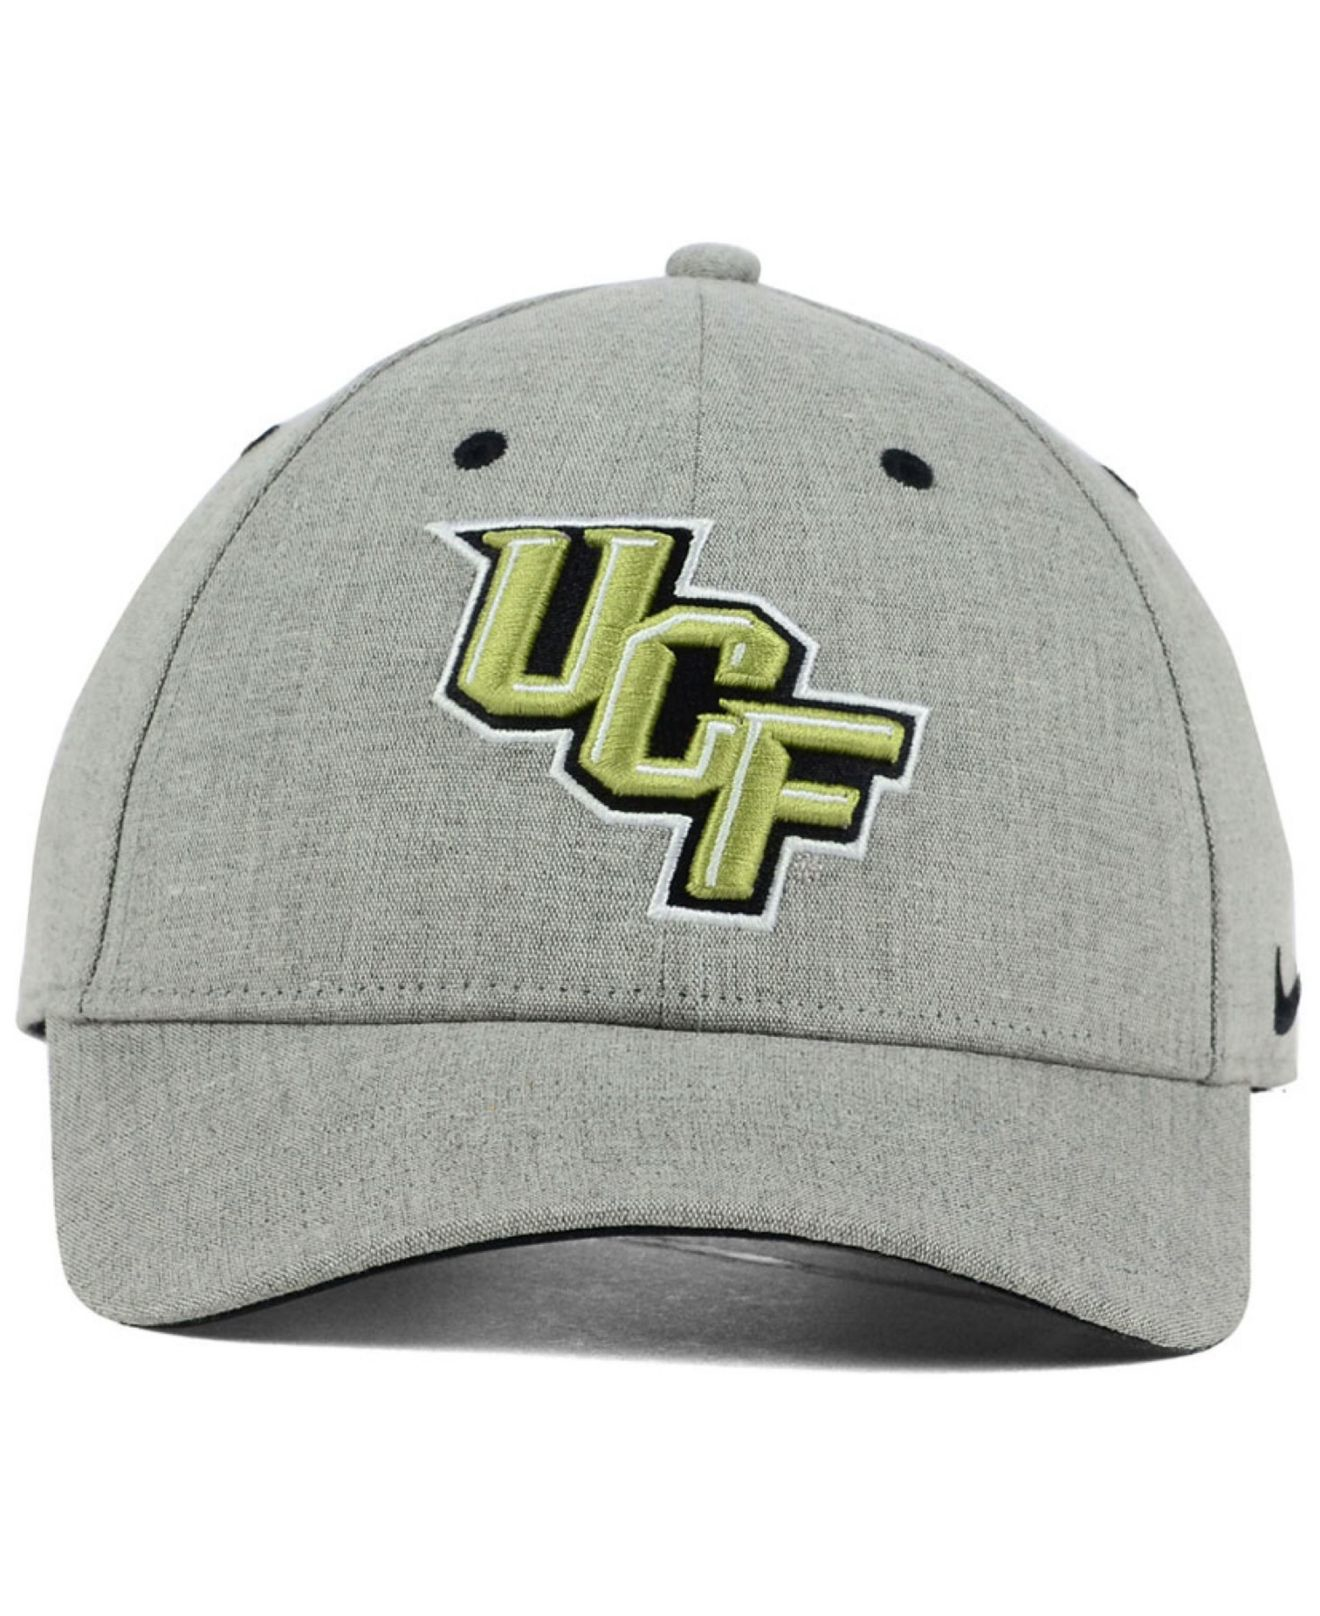 bd5b0a05583 Lyst - Nike Ucf Knights Fly Rush Logo Cap in Gray for Men